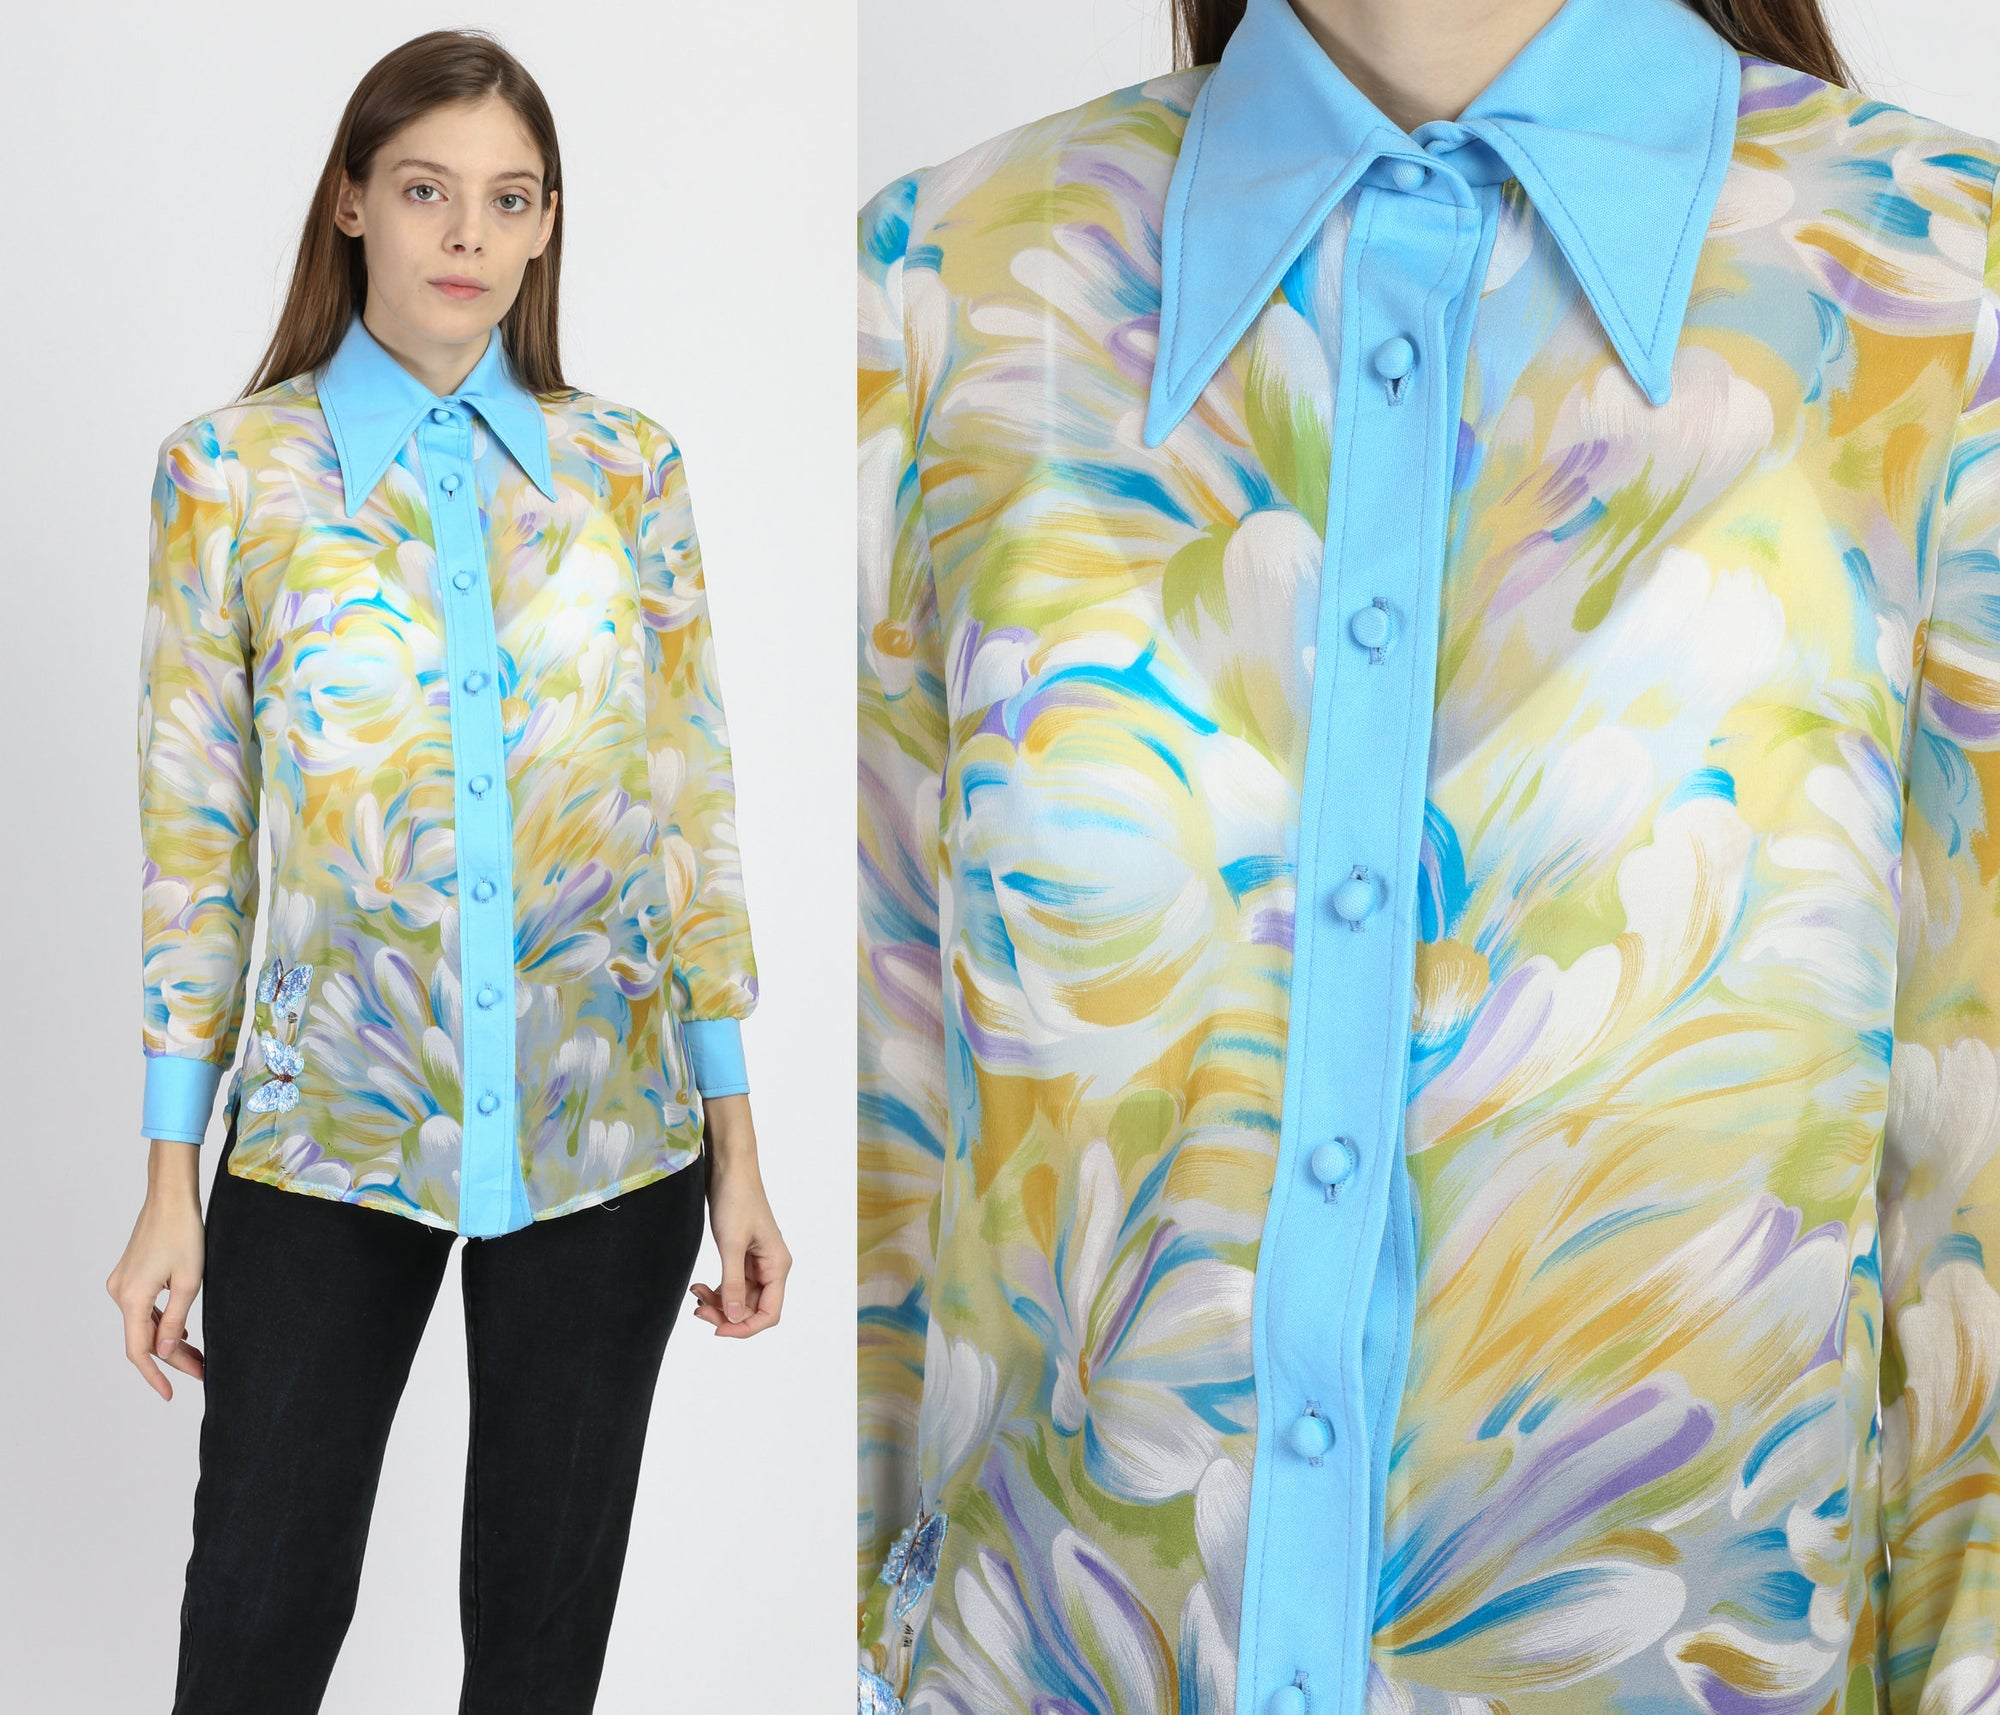 70s Sheer Floral Watercolor Blouse - Small